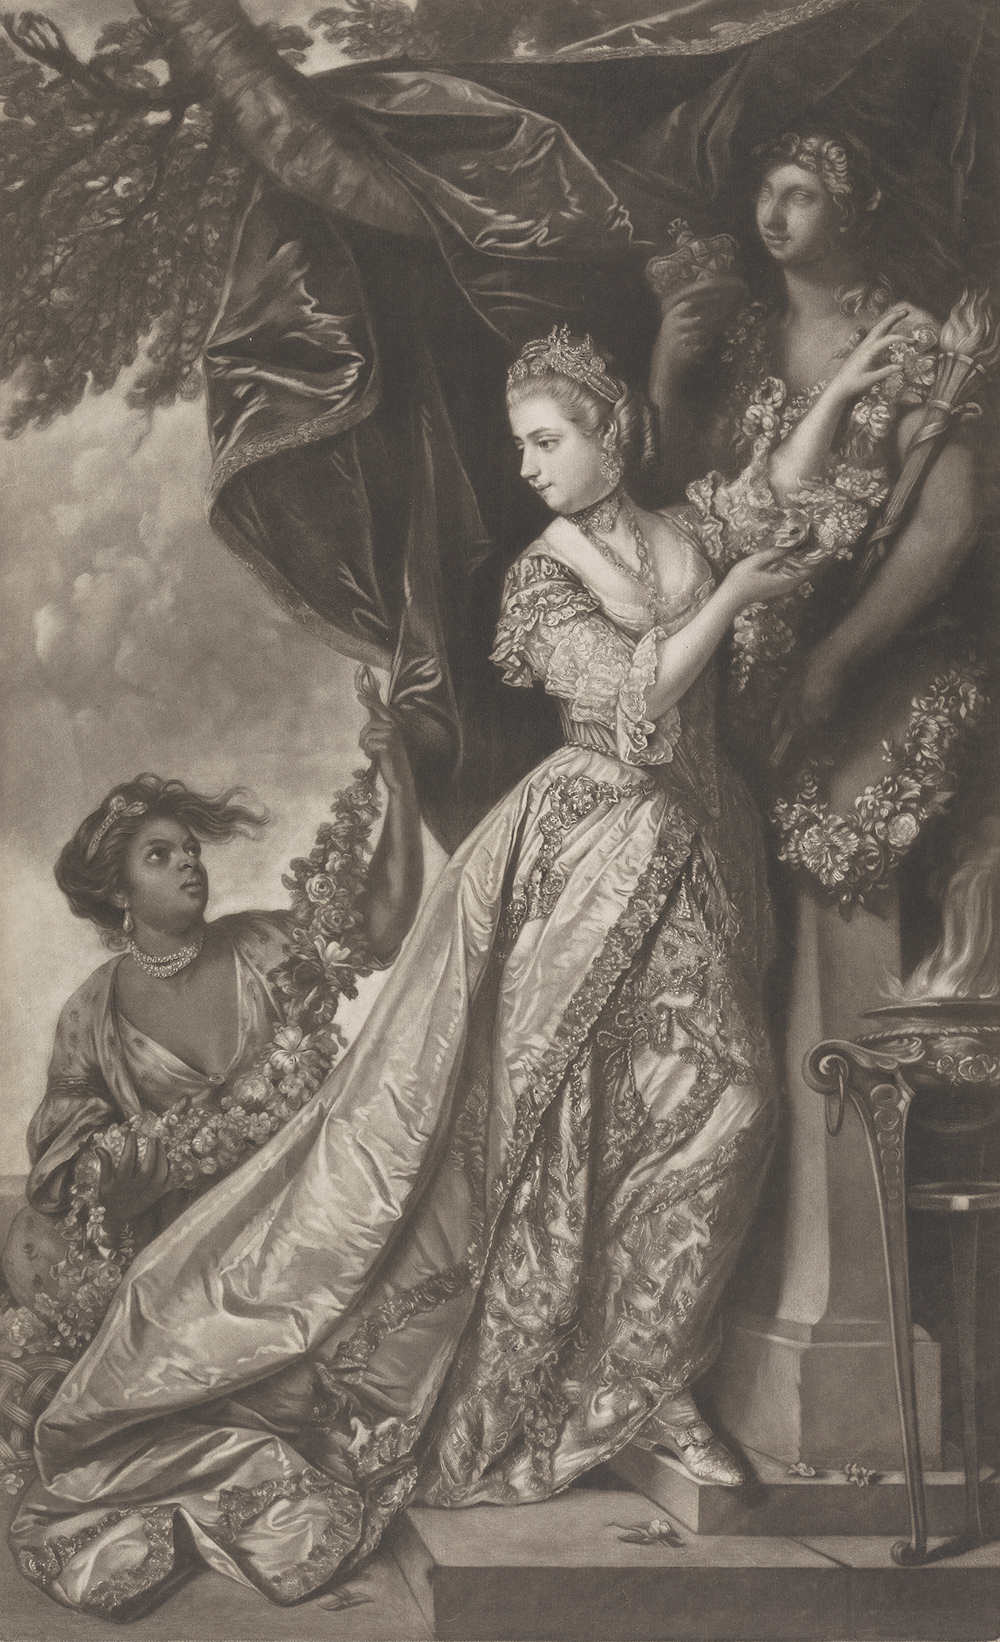 Lady Elizabeth Keppel and a Servant, by Edward Fisher, after Sir Joshua Reynolds, c. 1760. Yale Center for British Art, Paul Mellon Fund.